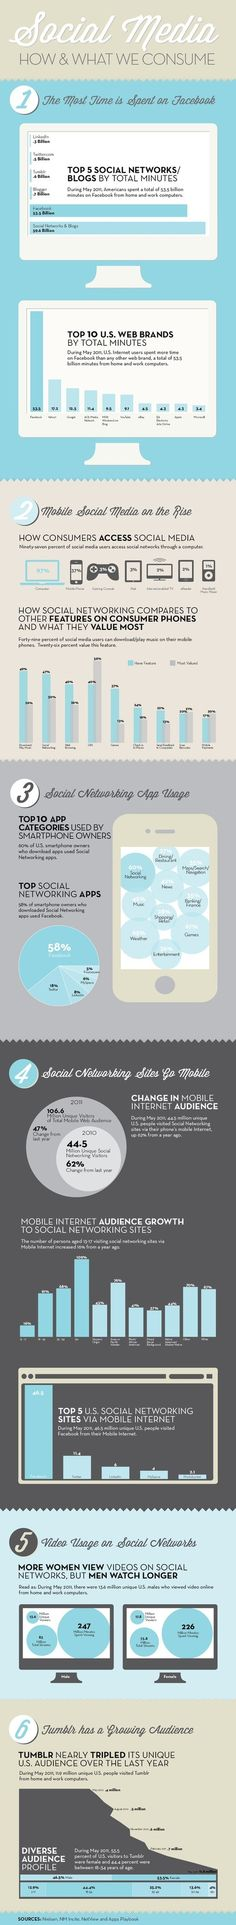 Social Media: How and What we Consume - #Infographic